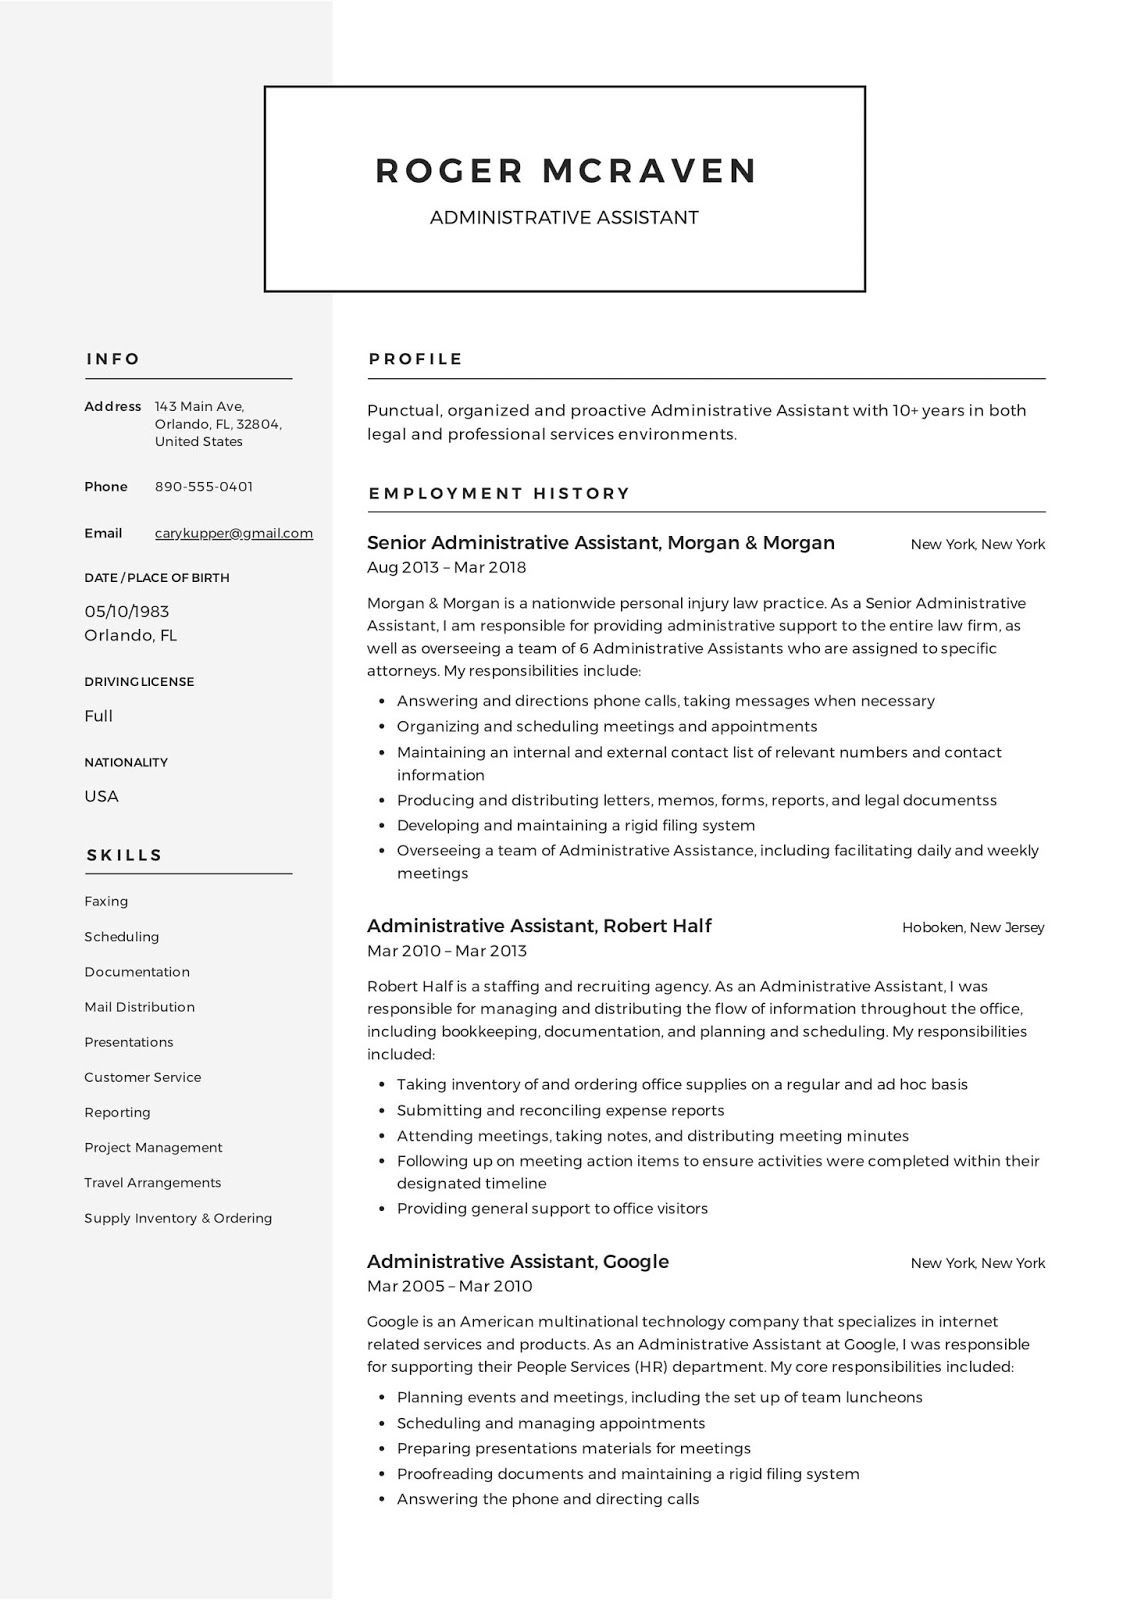 administrative resume template free microsoft word assistant office manager event planner Resume Free Resume Examples 2020